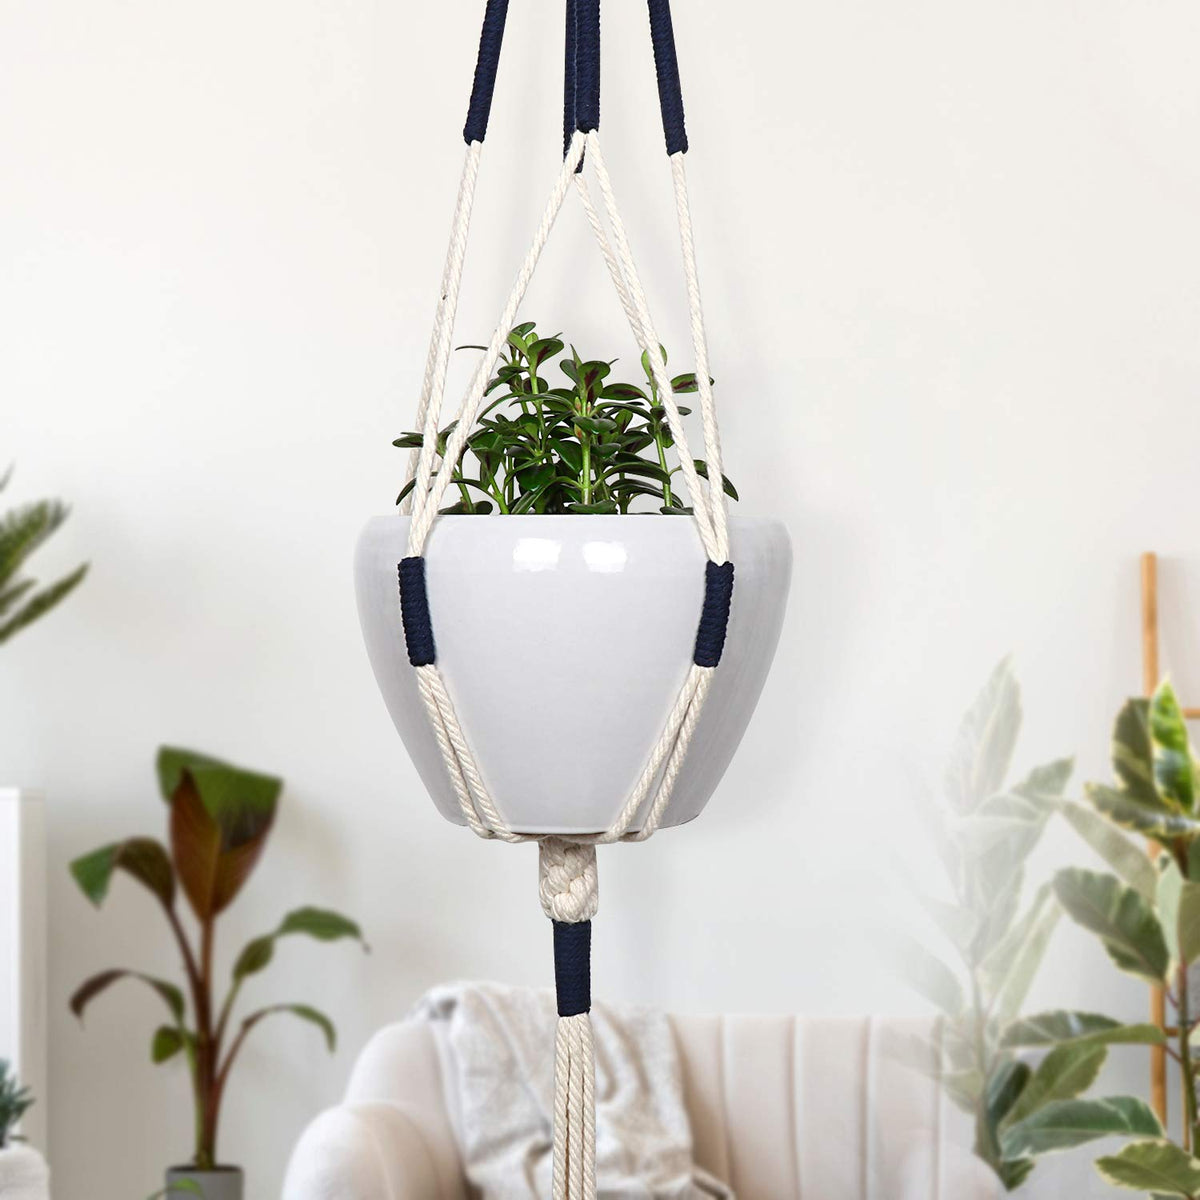 Set of 2 Macrame Plant Hangers  Hanging Planter Indoor Outdoor 41 Inch, Bohemian Decor